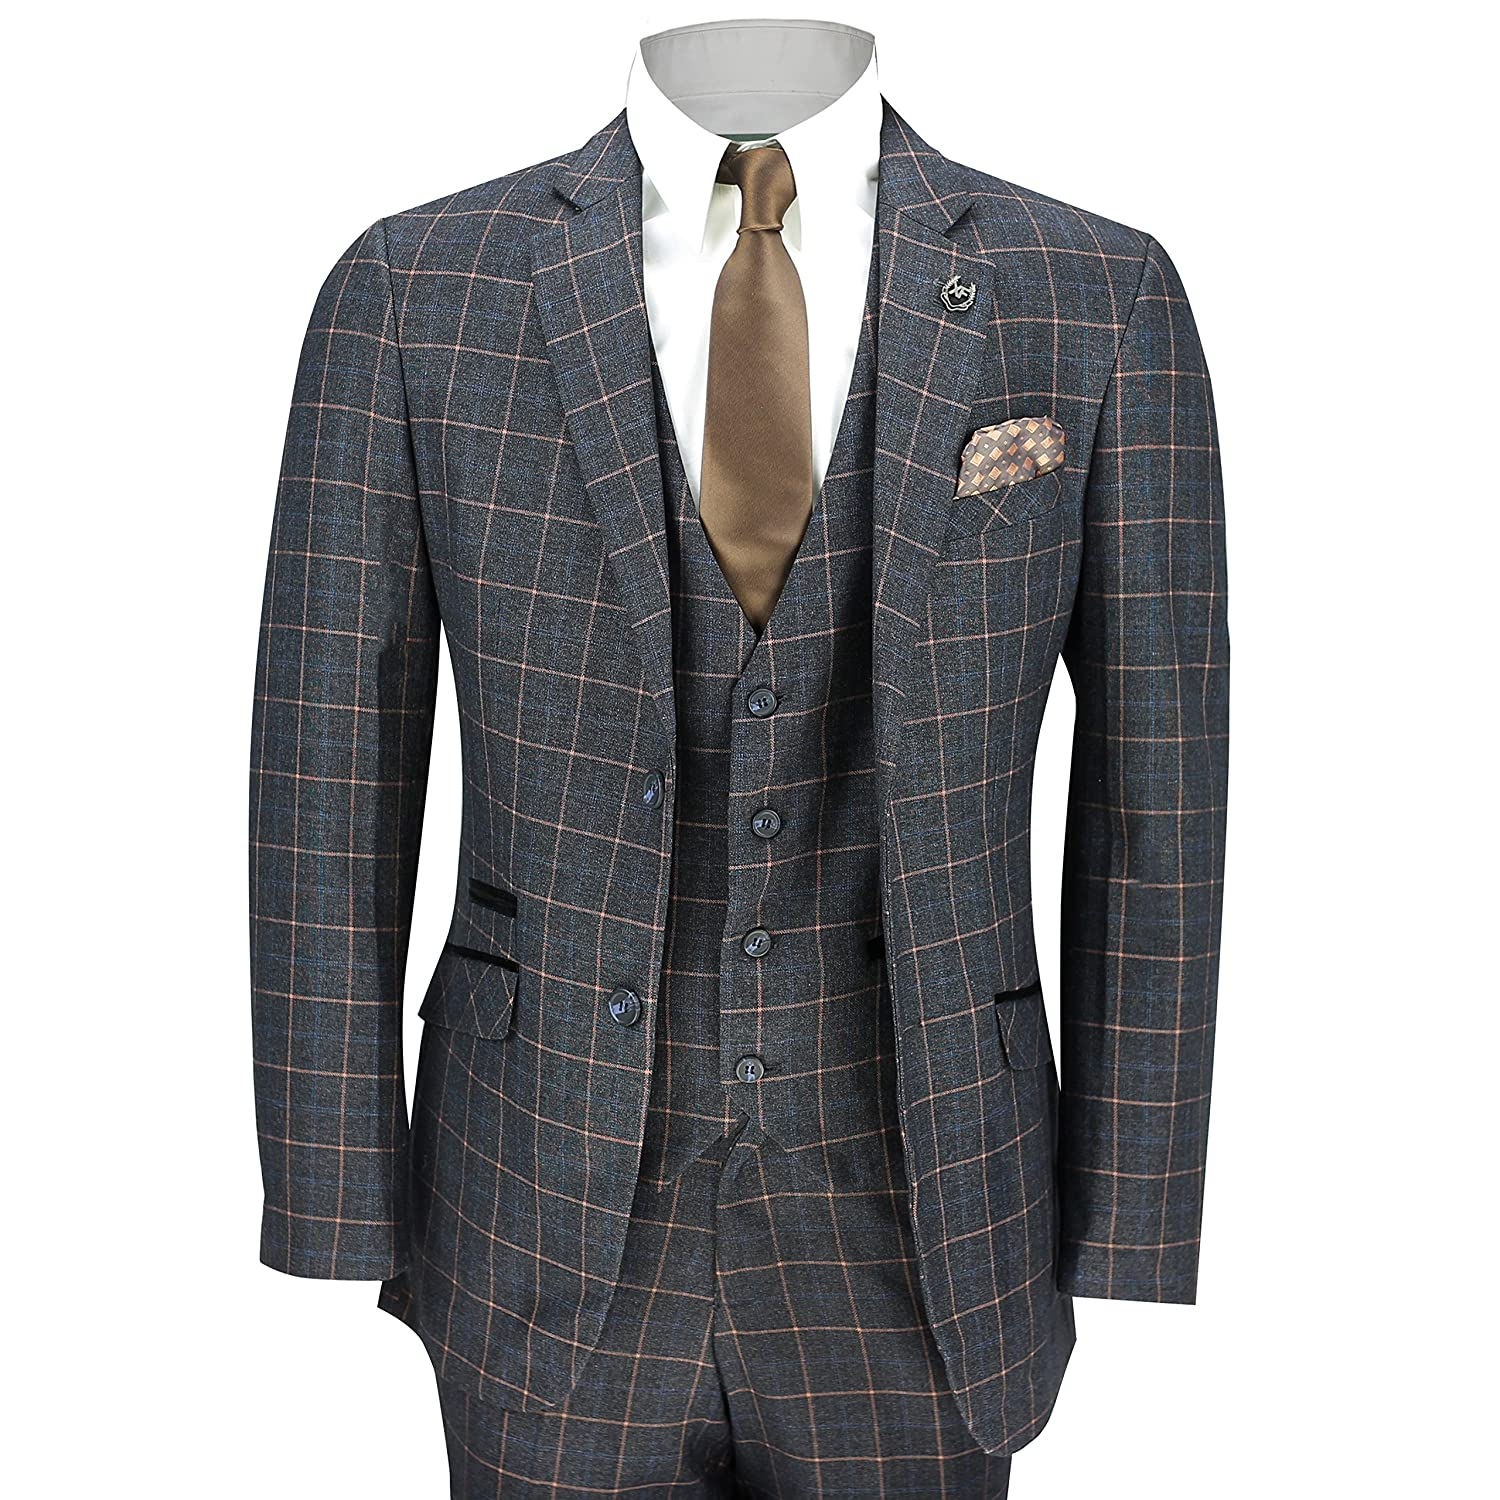 1920s Fashion for Men XPOSED Mens 3 Piece Blue Orange Window Check on Charcoal Grey Retro Smart Tailored Fit Vintage Suit £96.99 AT vintagedancer.com